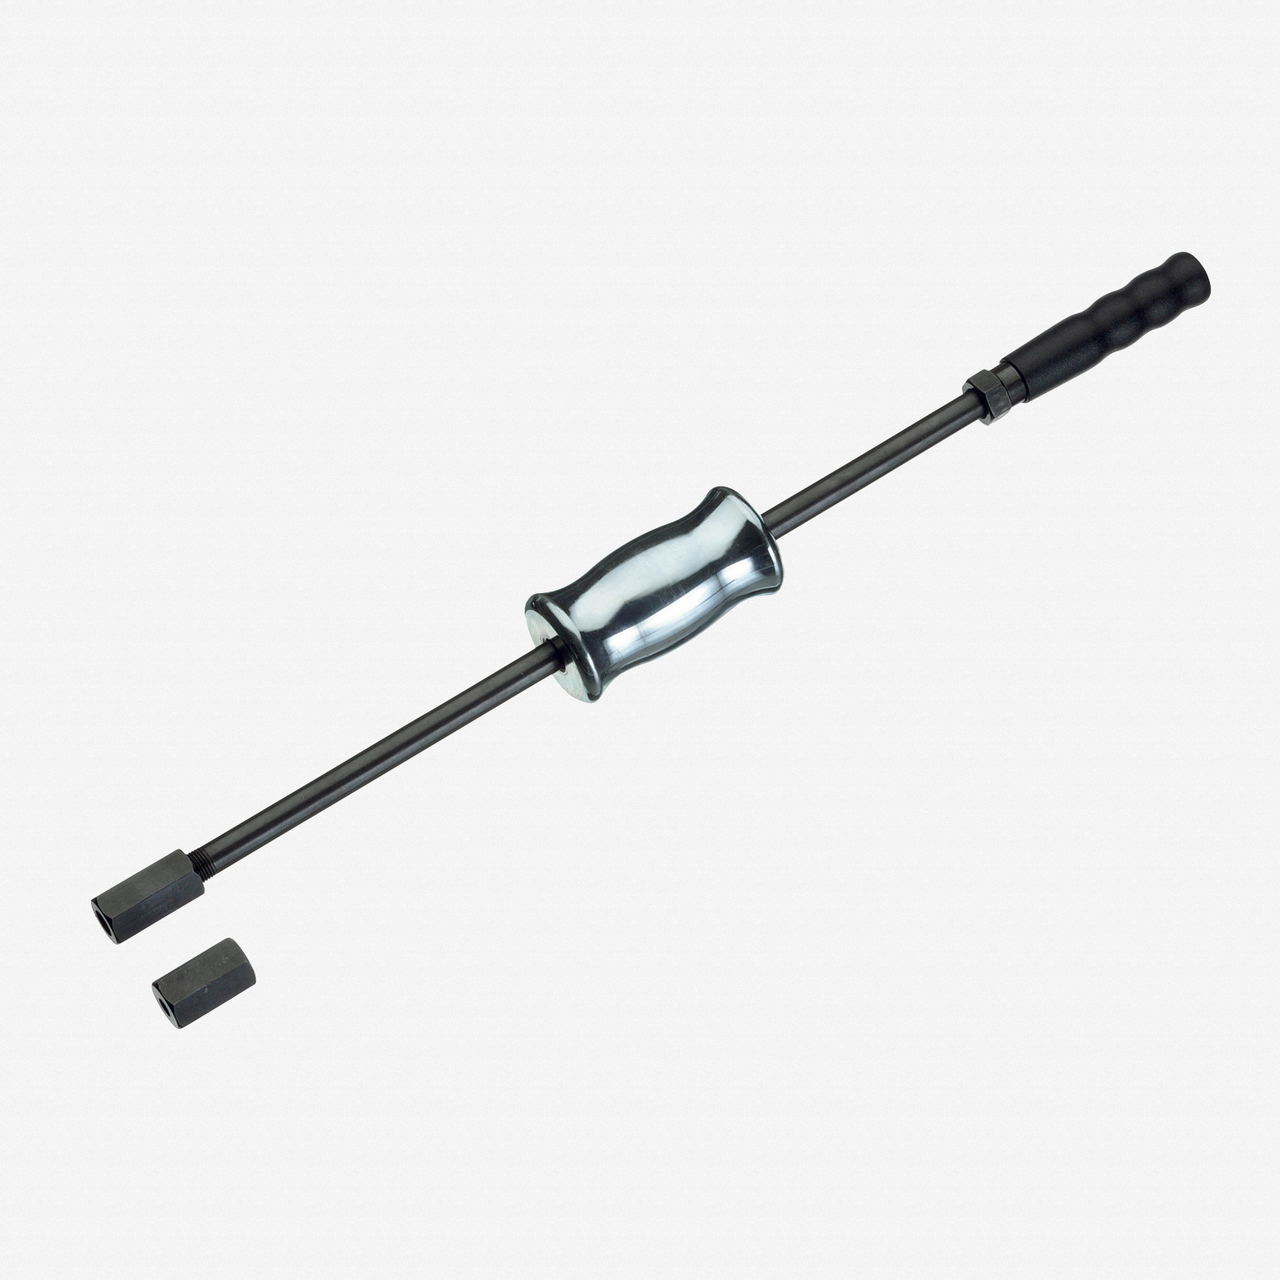 Gedore 1.35/2 Sliding hammer 400 mm, 1.7 kg - KC Tool